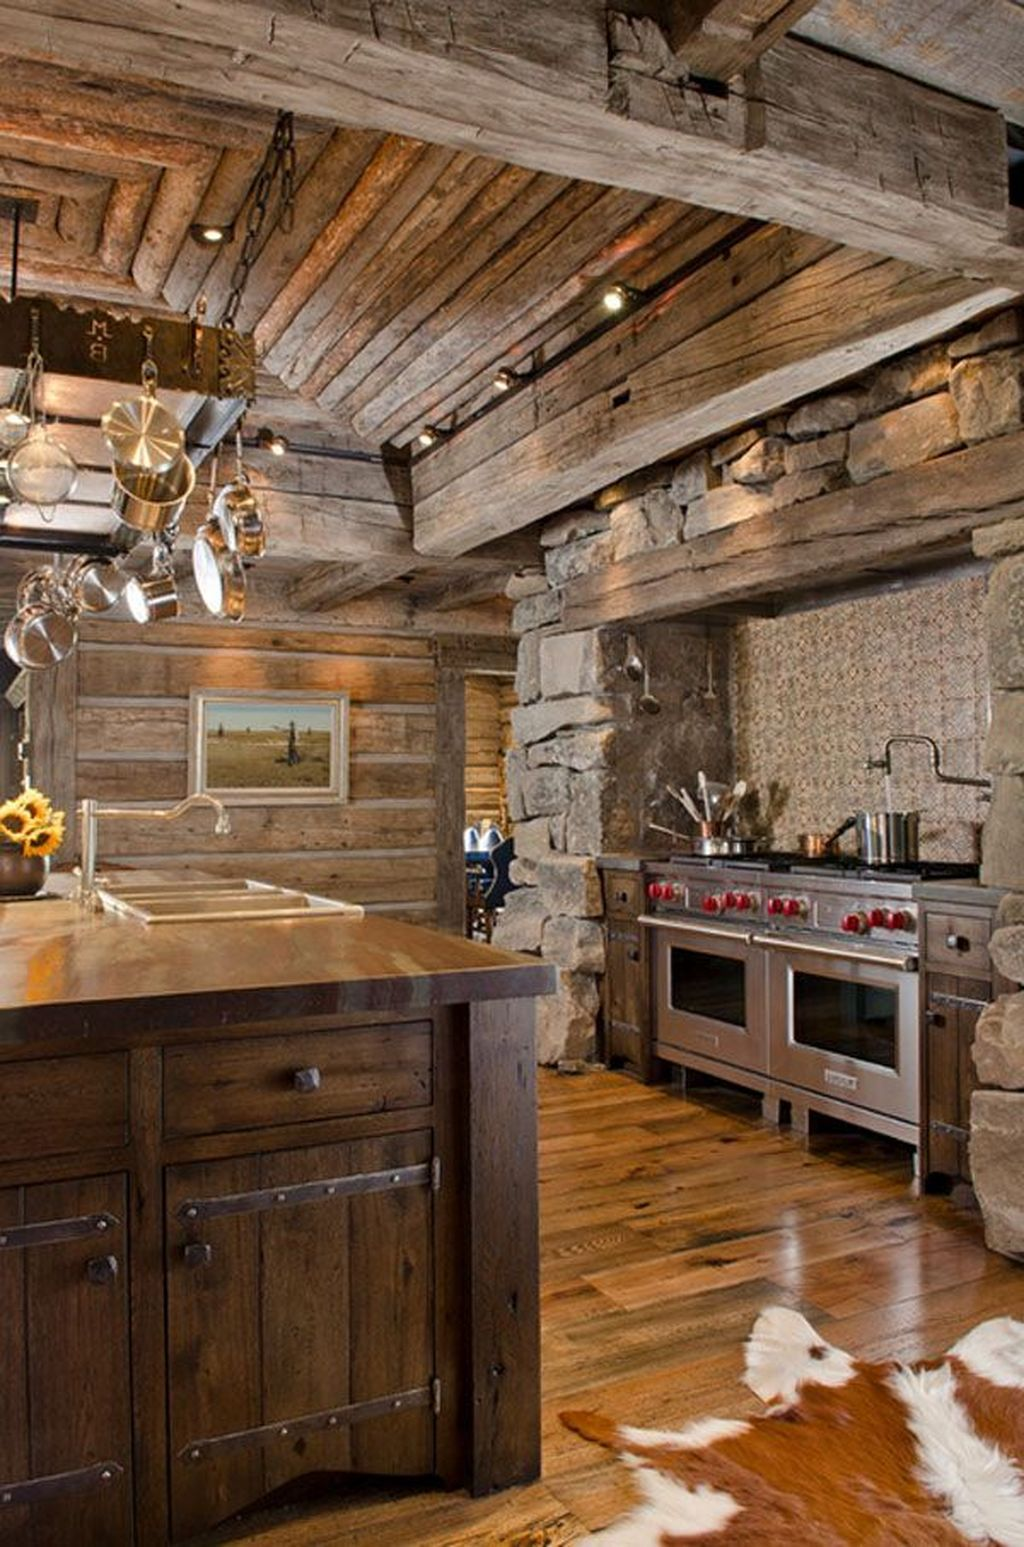 42 awesome rustic kitchen design ideas will makes warm heart for rh pinterest com